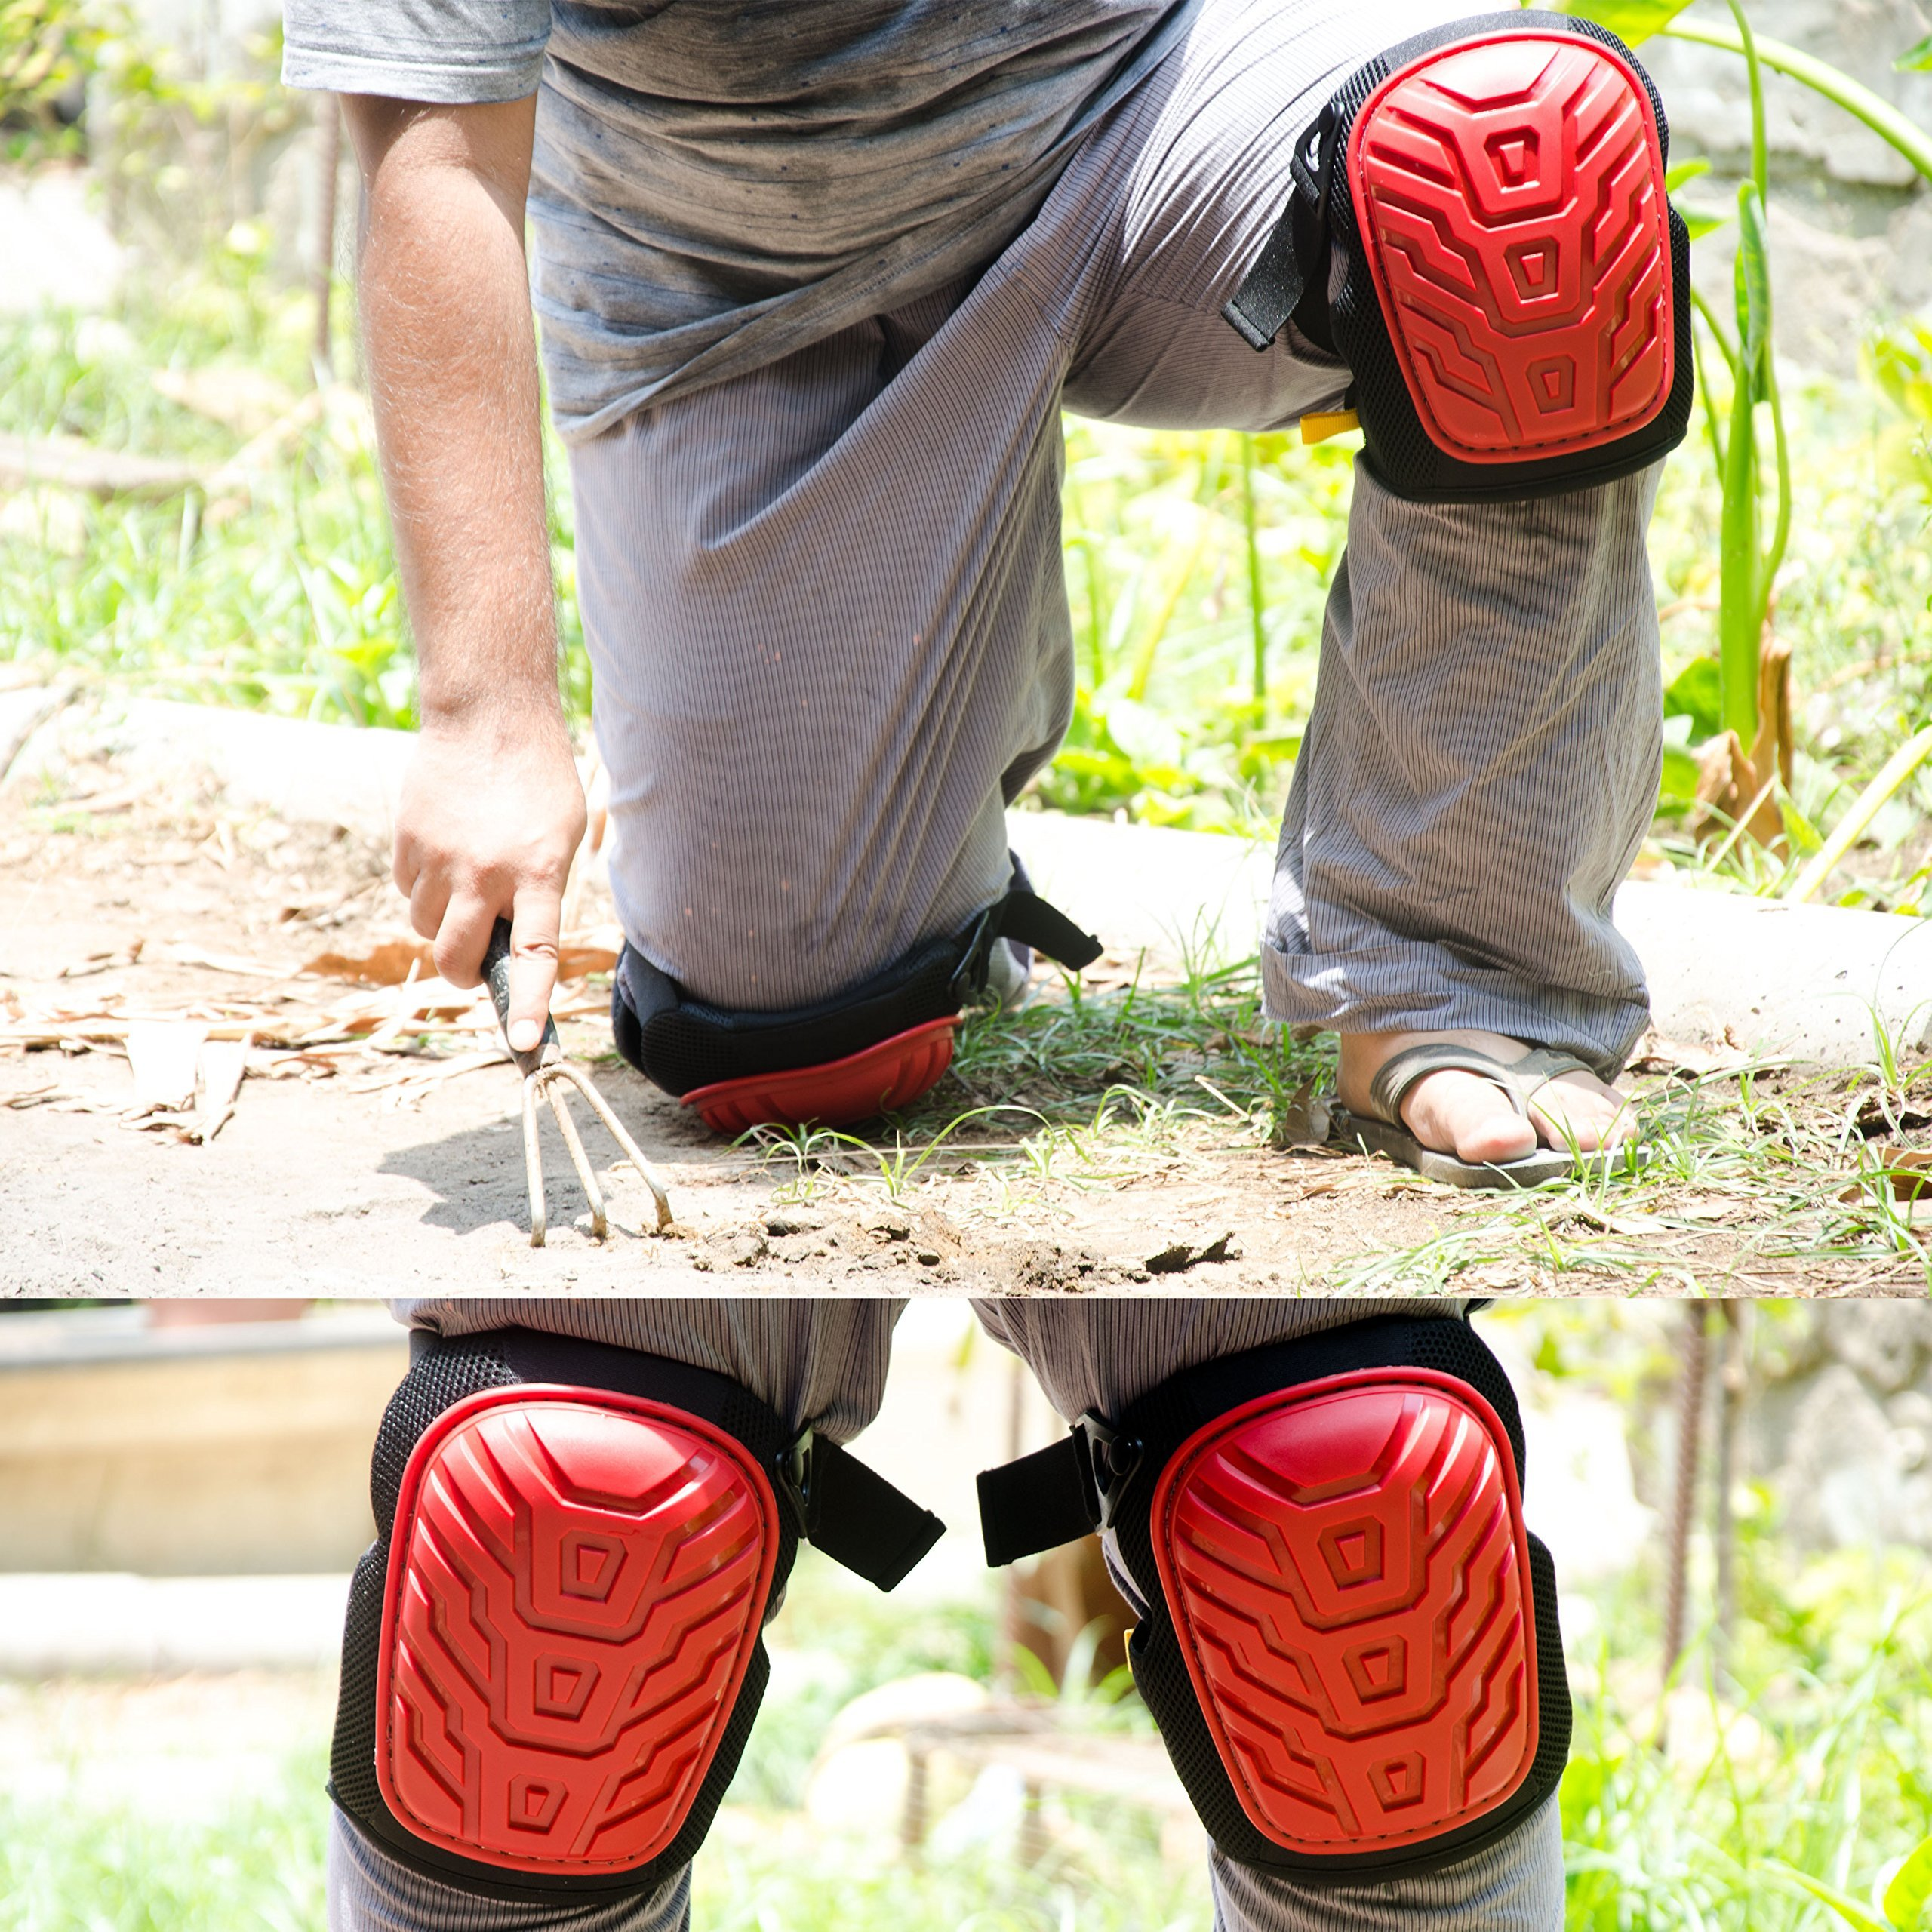 Professional Knee Pads - Easy to WEAR Heavy Duty Memory Foam Padding, Comfortable Gel Cushion, Strong Straps FITS All, Adjustable Easy-Fix Clips - Best for Gardening, Construction, Flooring by Kutir (Image #7)